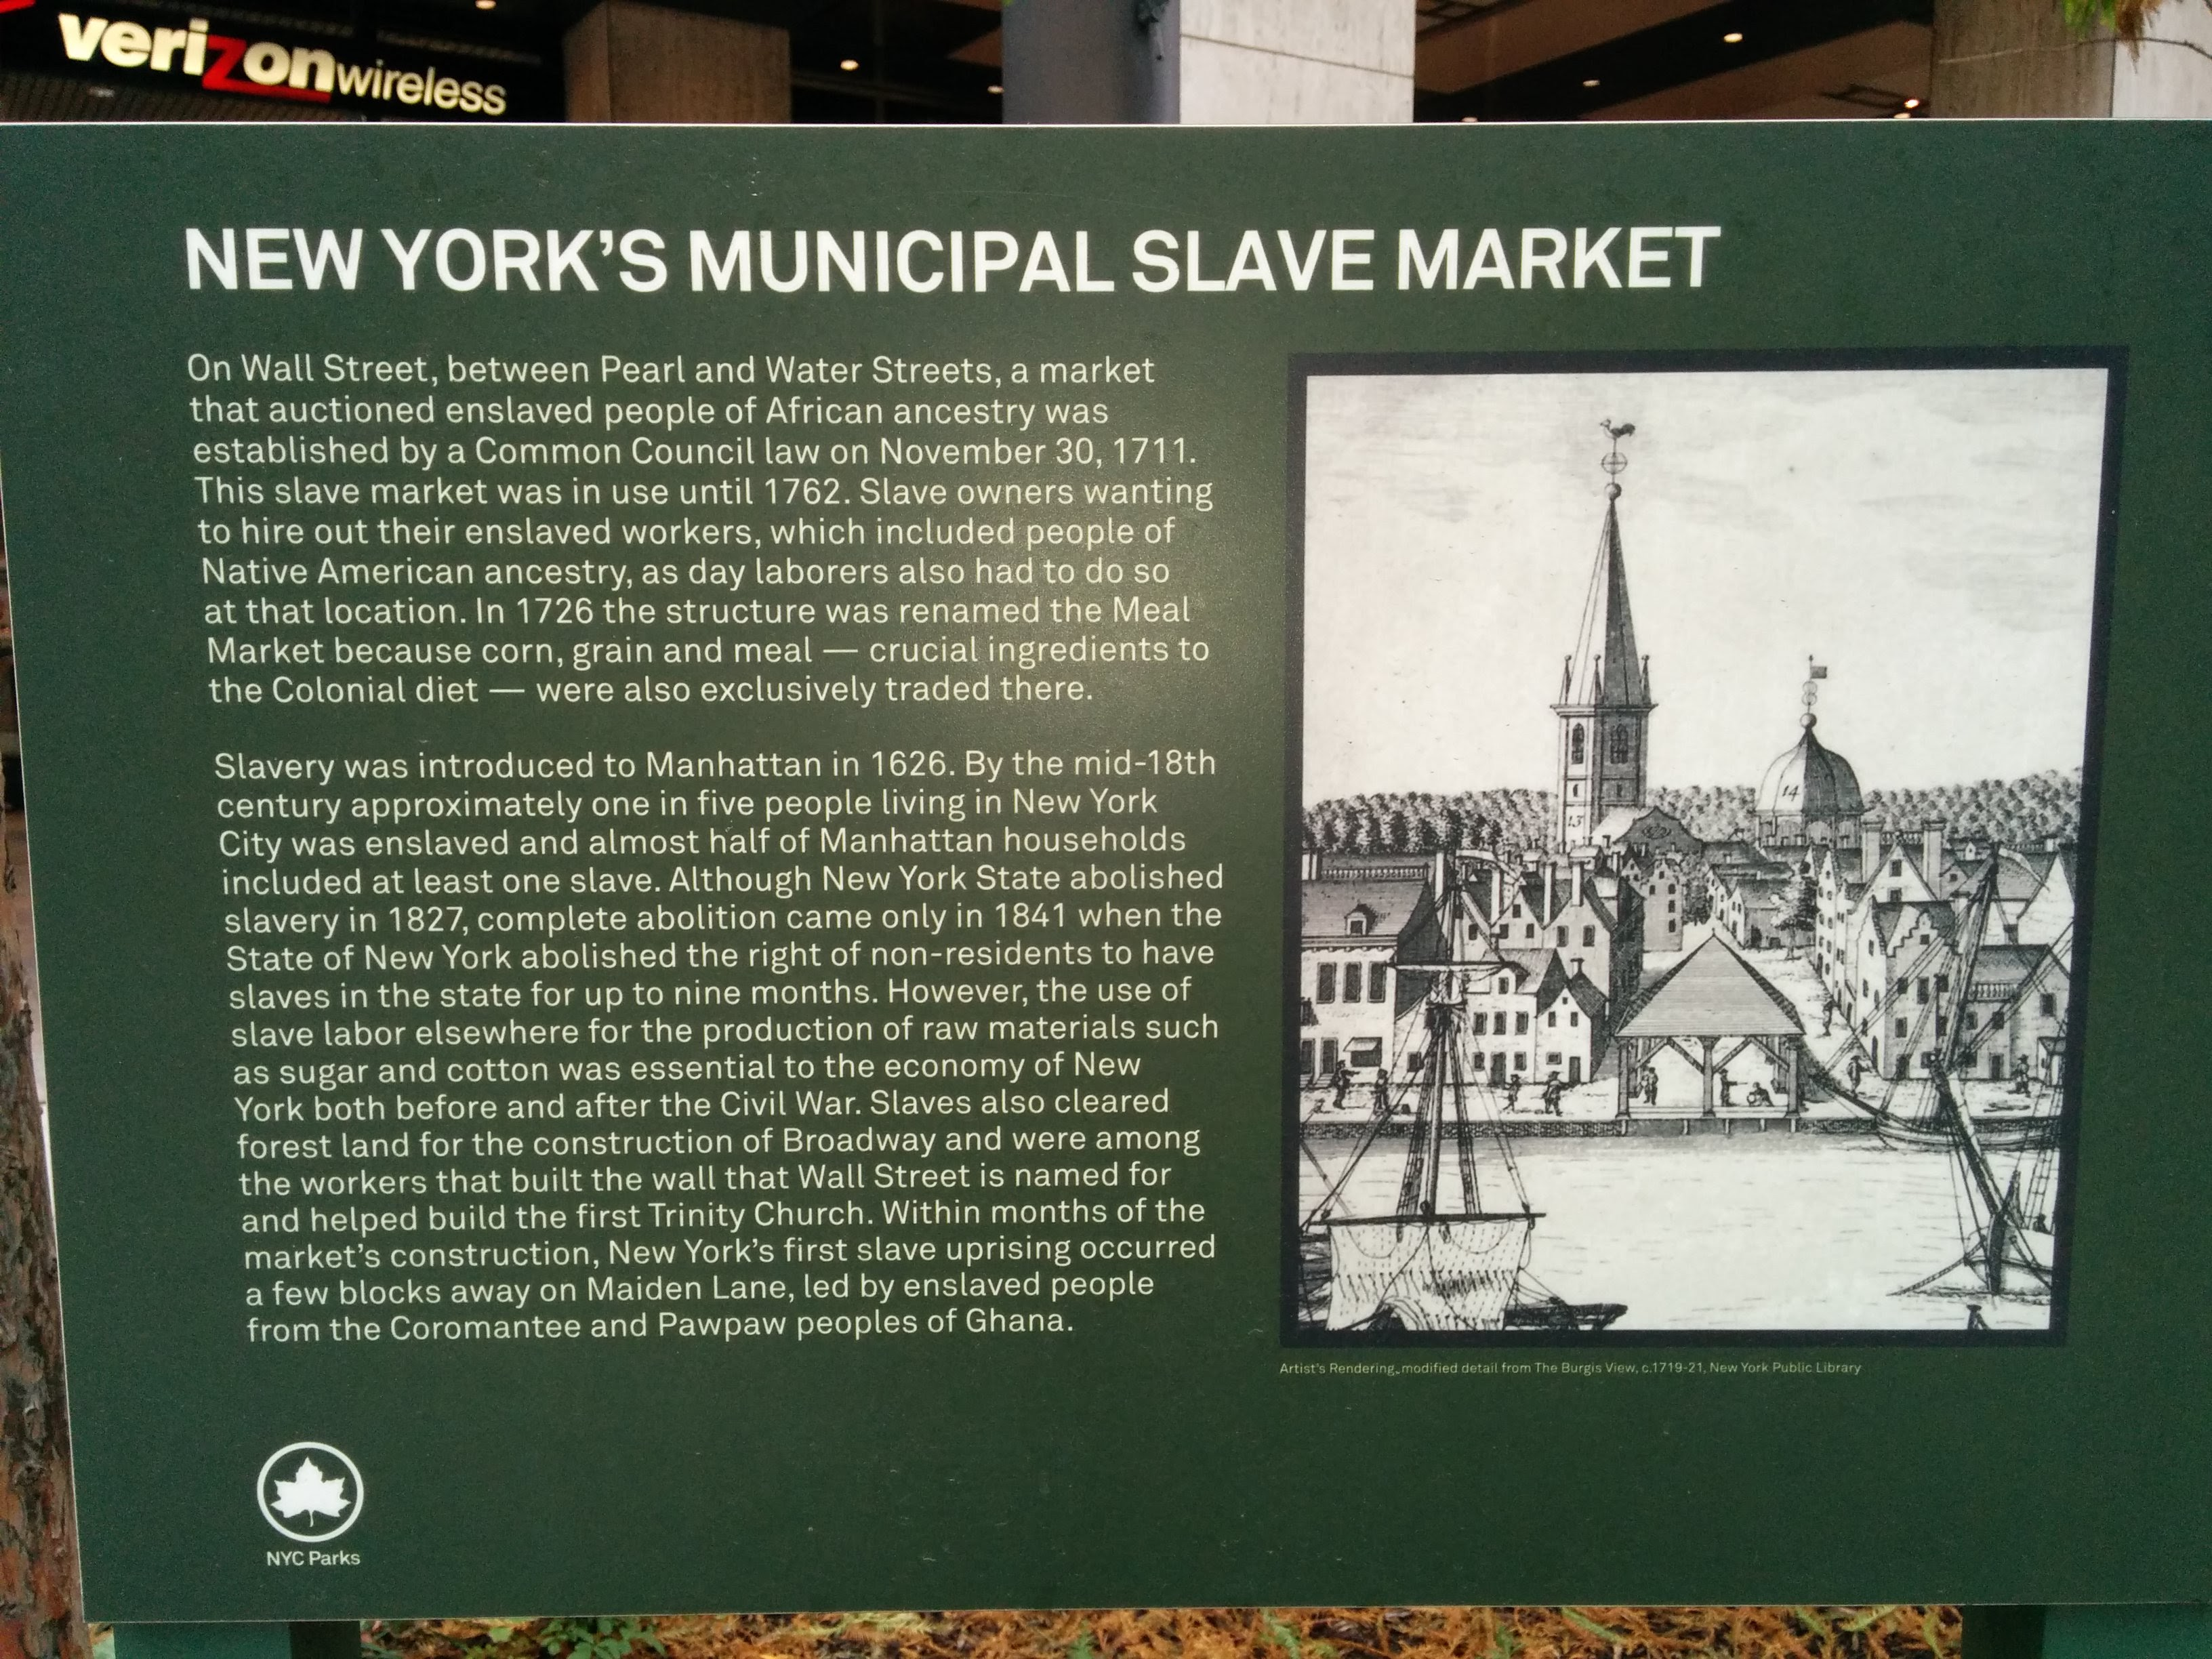 New York's Municipal Slave Market plaque